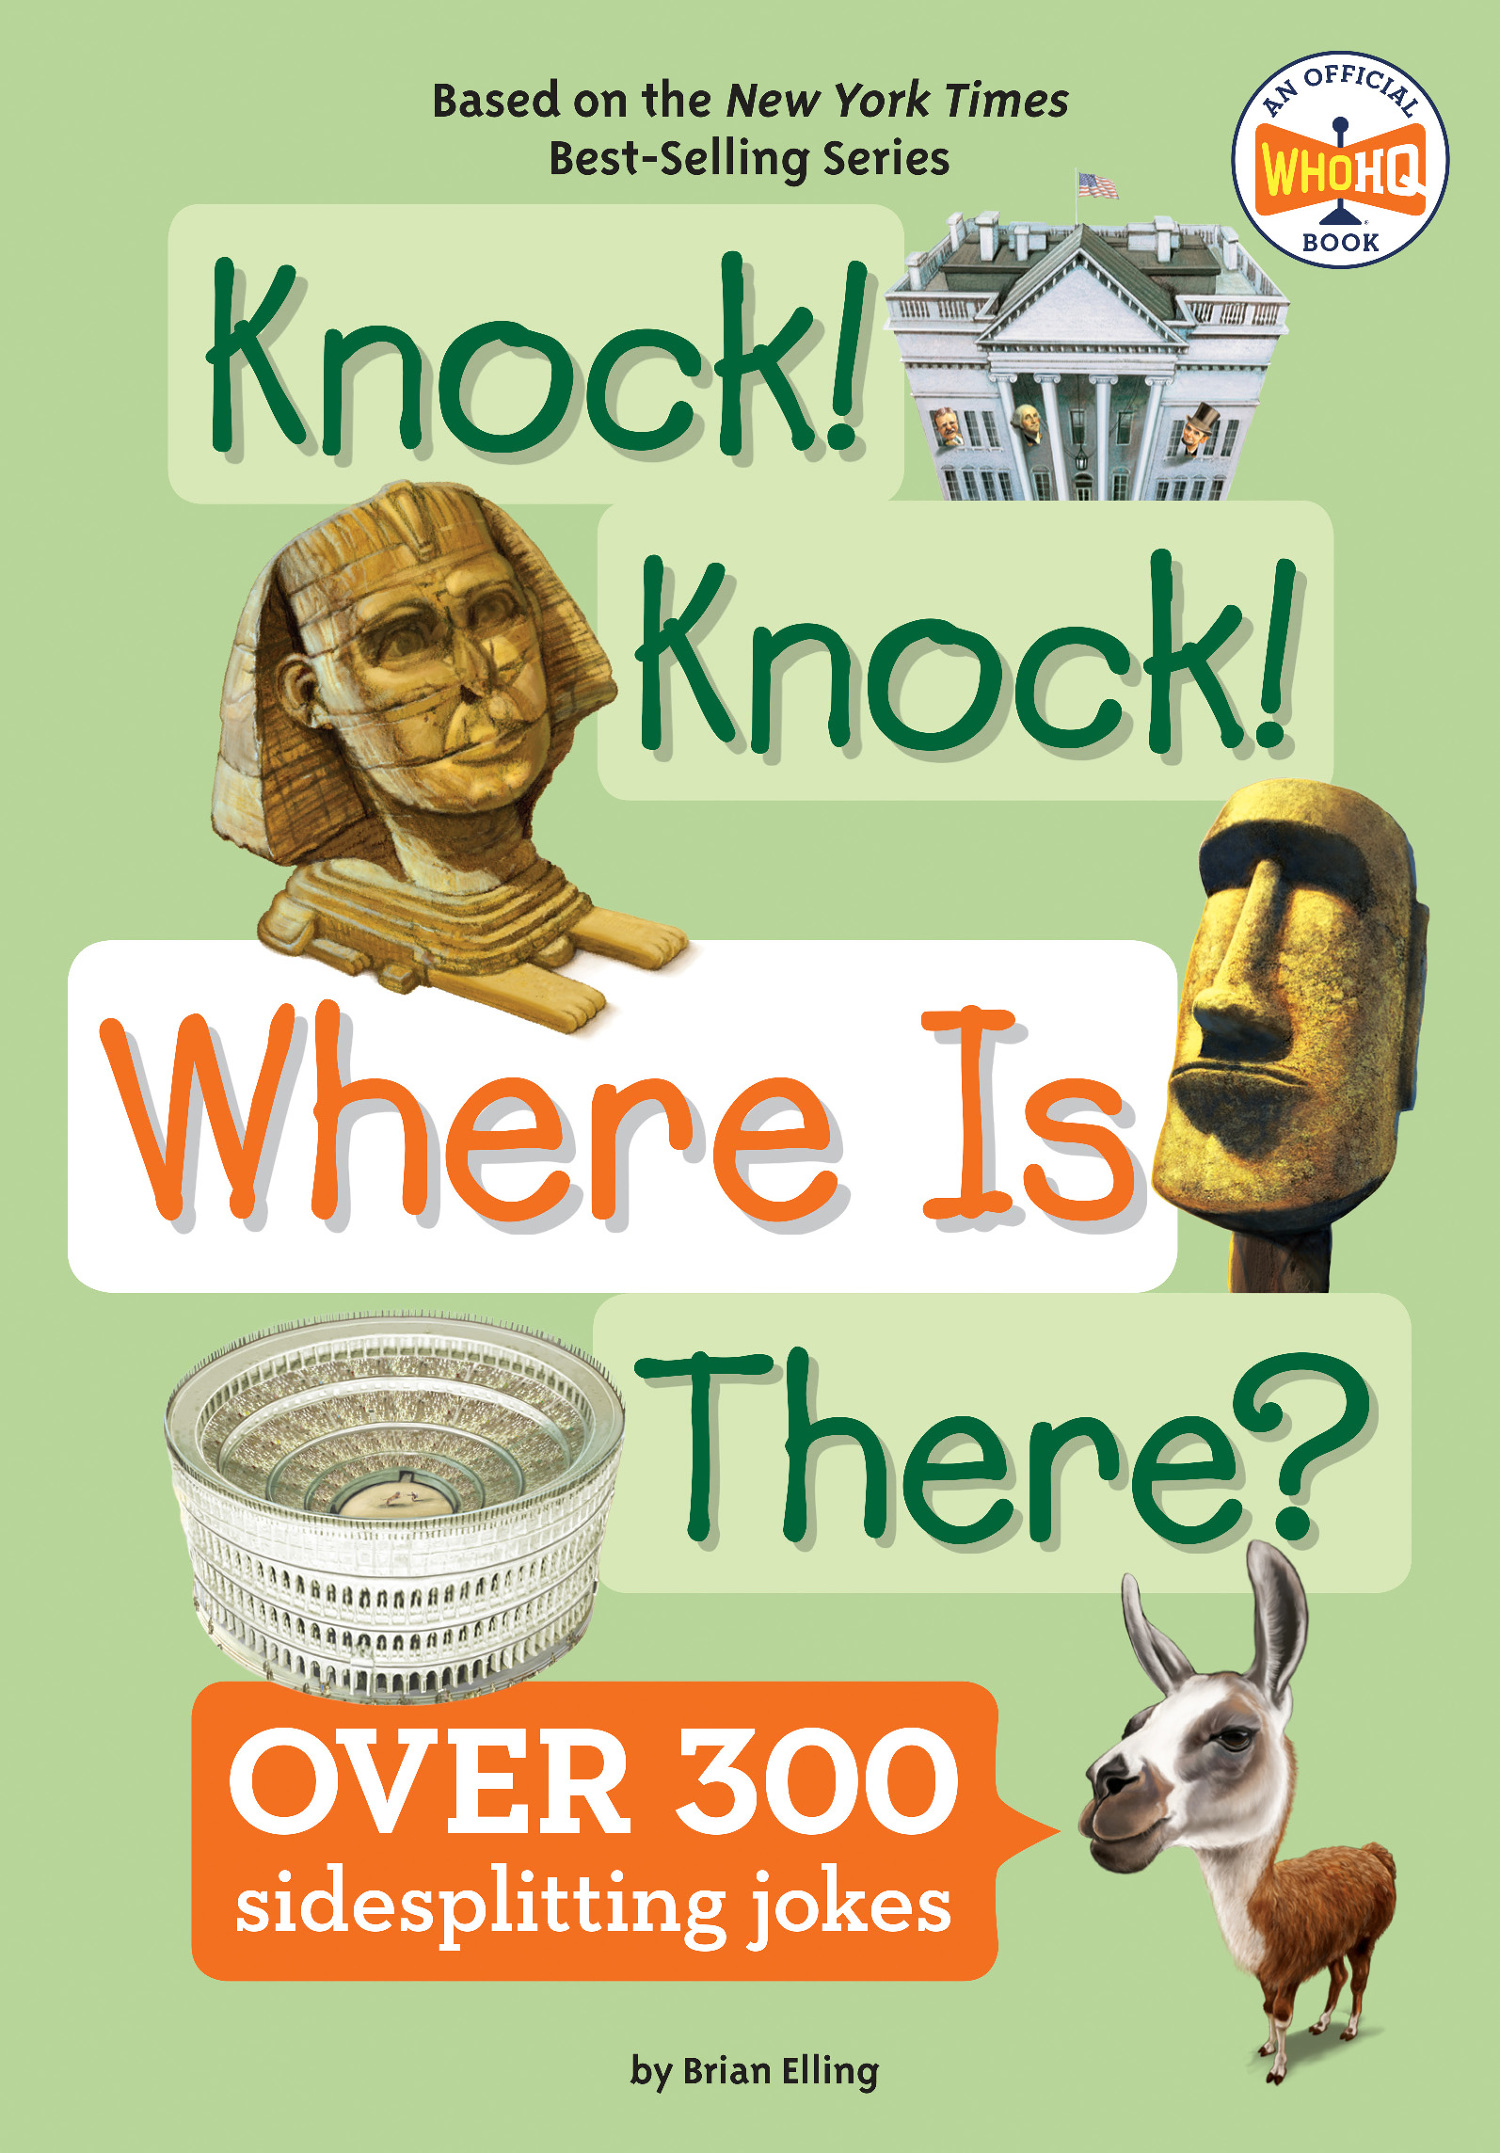 Who HQ: Knock! Knock! Where Is There? - Julia Rosenfeld